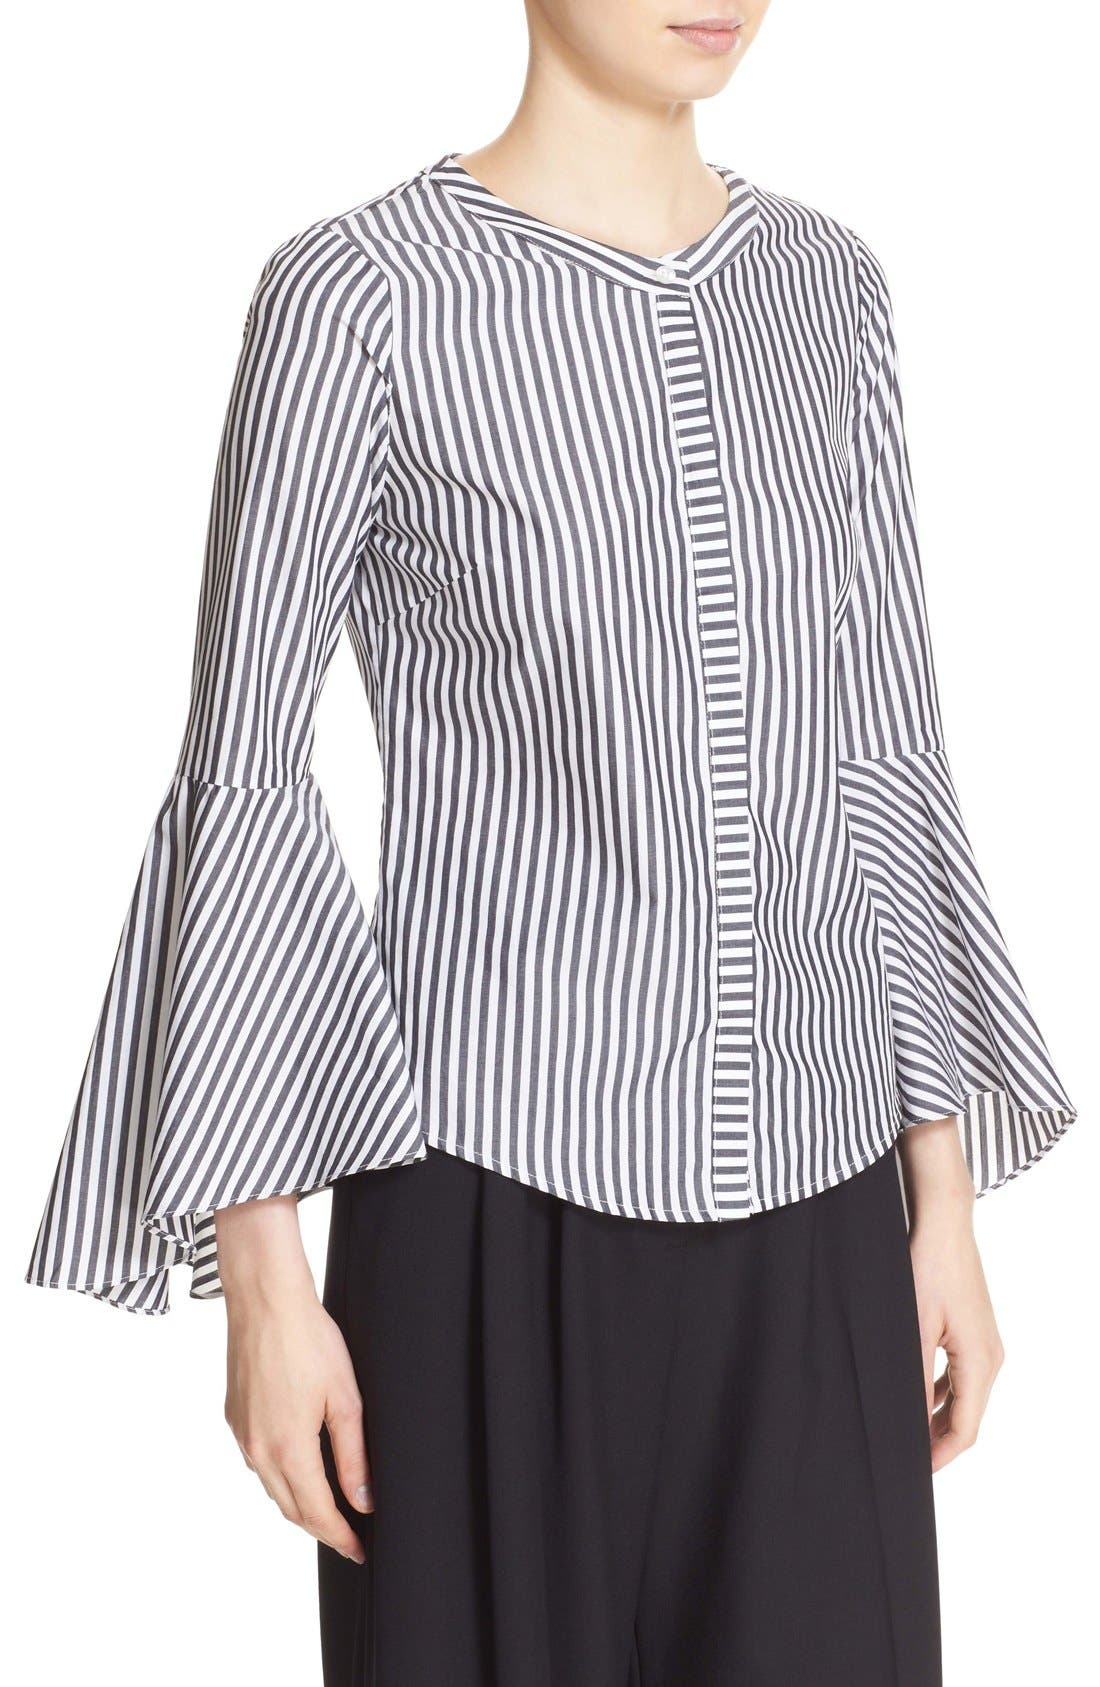 'Ruthie' Stripe Cotton Bell Sleeve Blouse,                             Alternate thumbnail 2, color,                             001